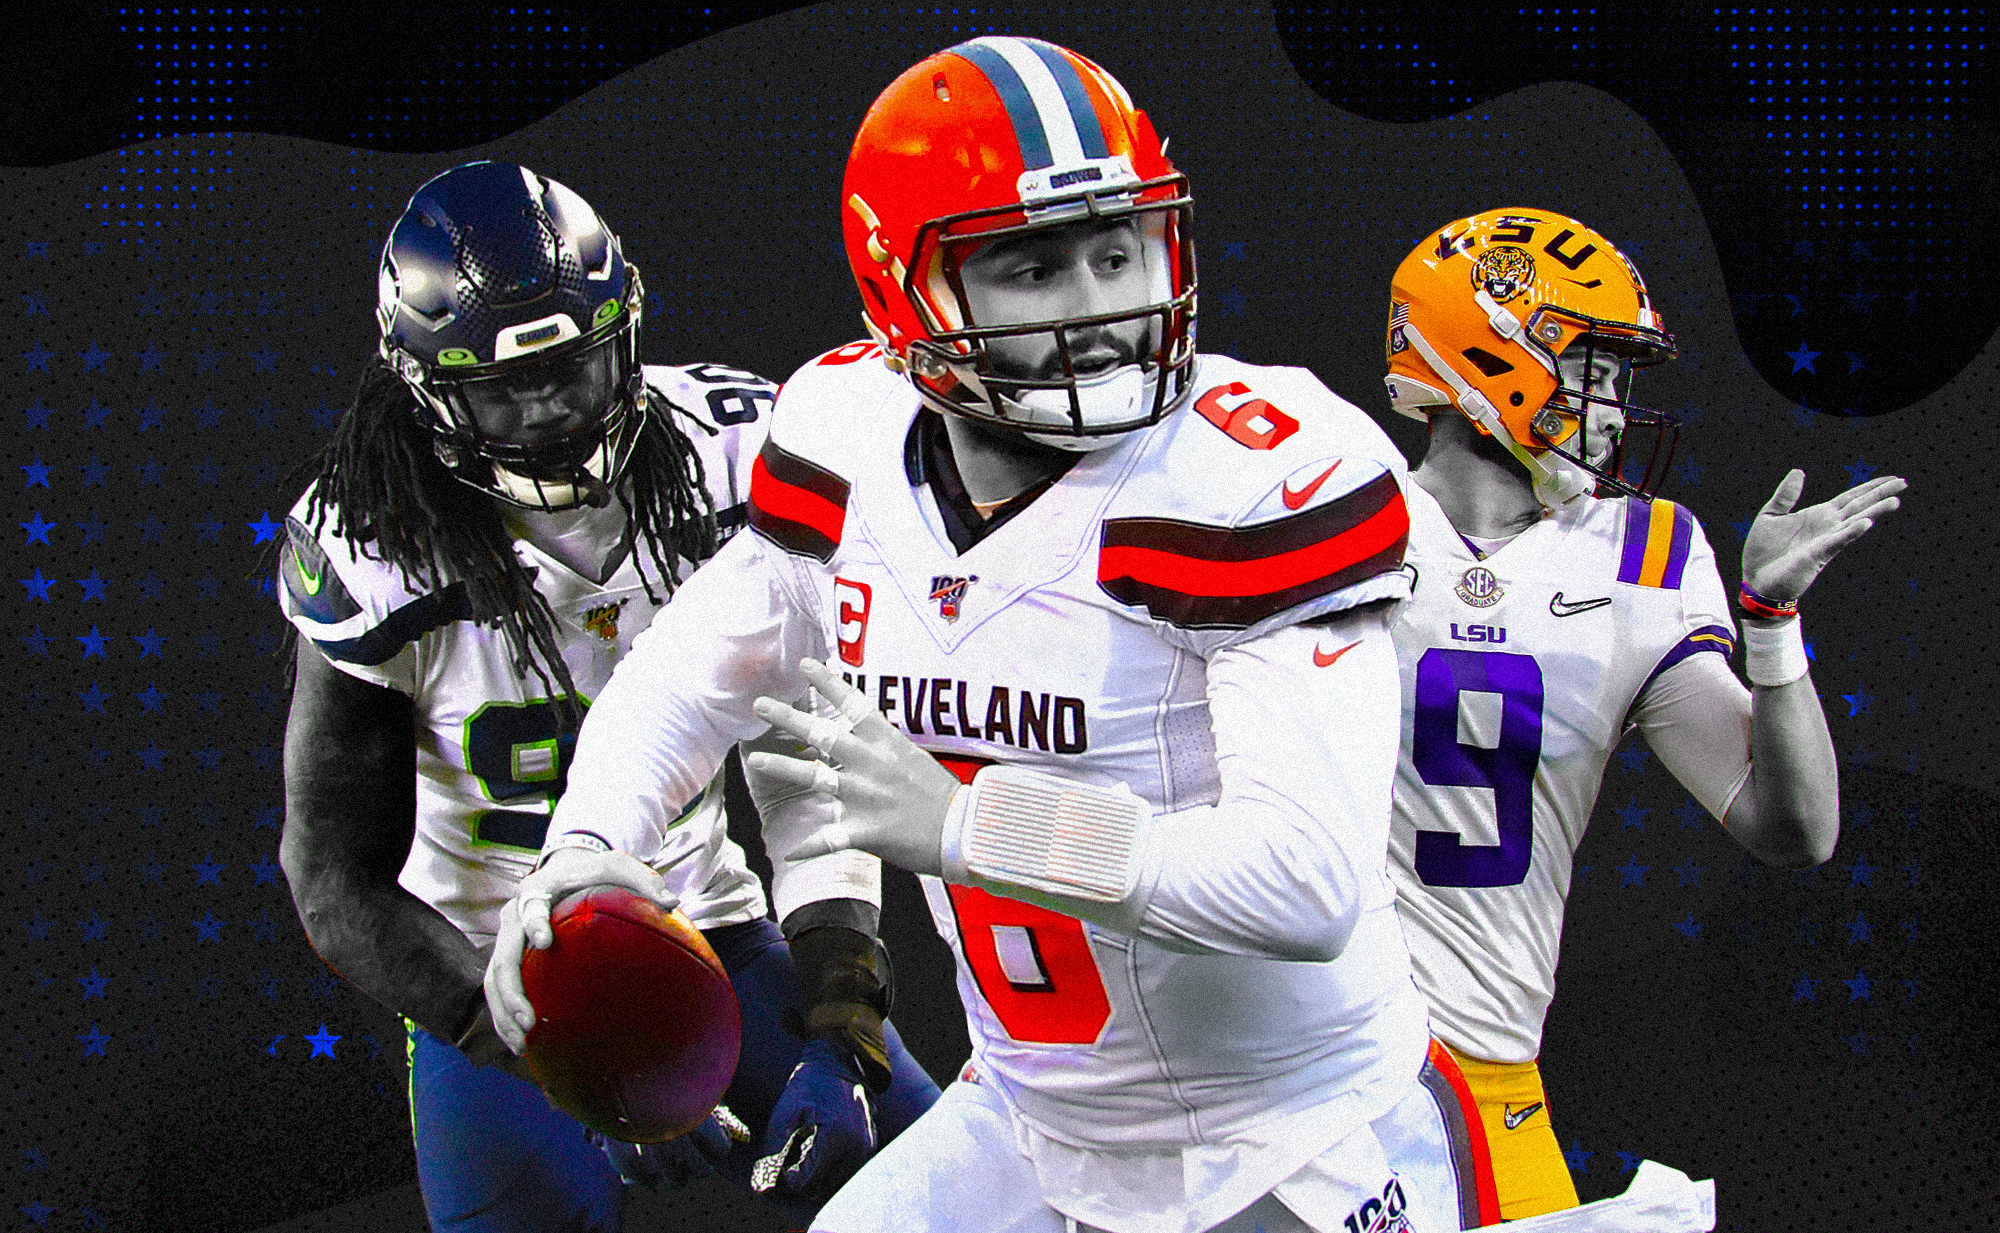 An art collage of NFL No. 1 picks Jadeveon Clowney, Baker Mayfield, Joe Burrow, superimposed on a black background with blue stars